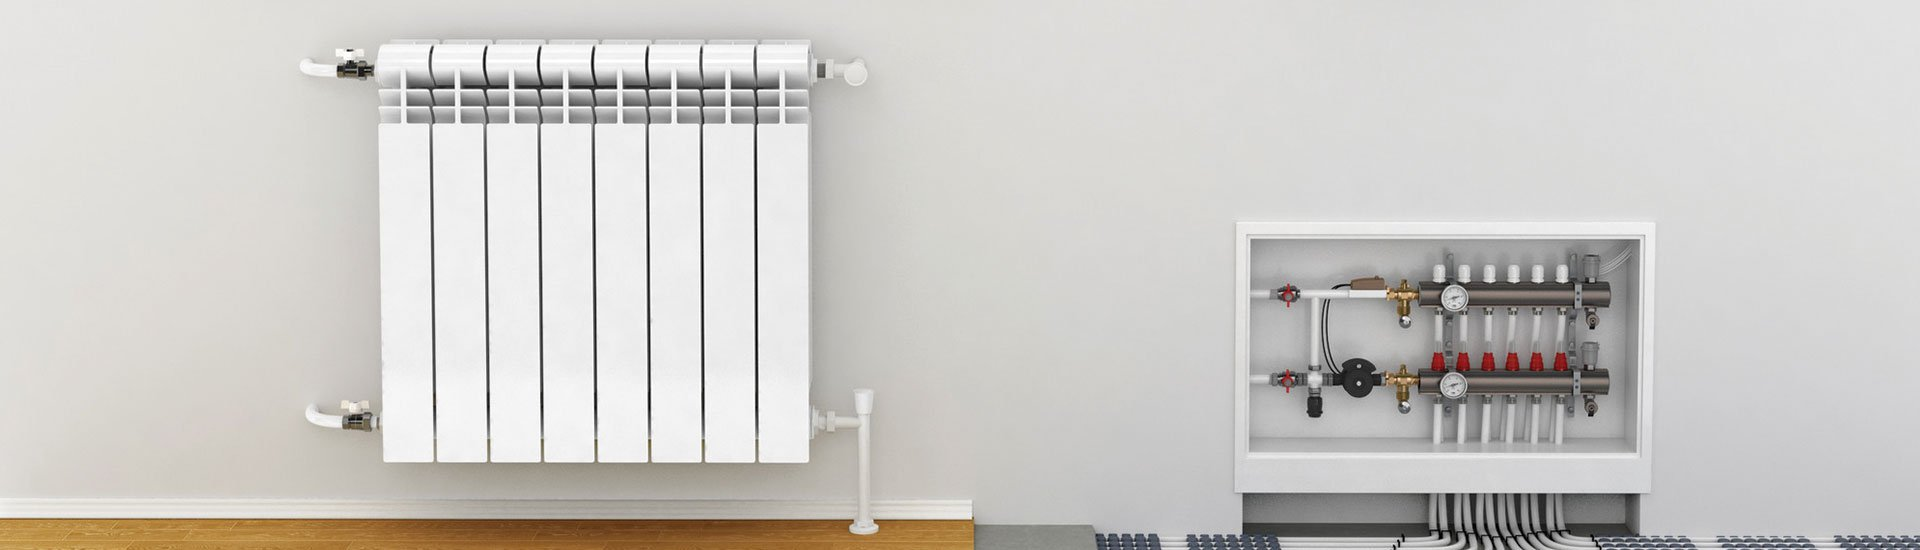 Central heating systems | Jf Gas & Heating